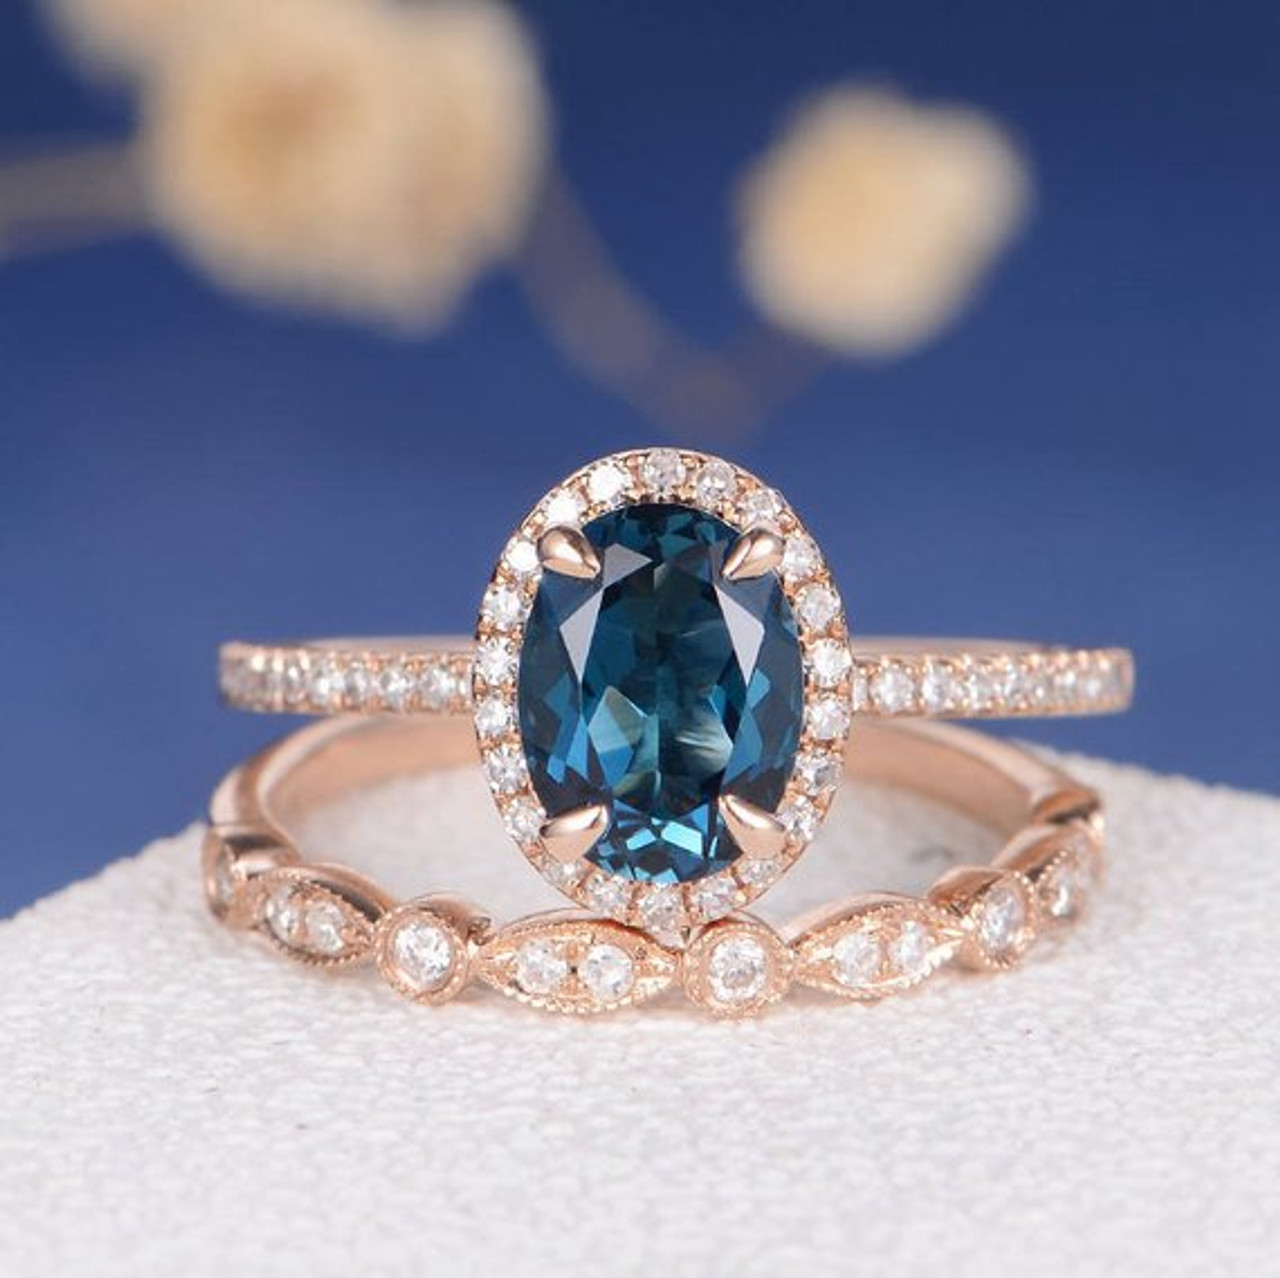 6 8mm Oval Cut London Blue Topaz Unique Engagement Ring Set